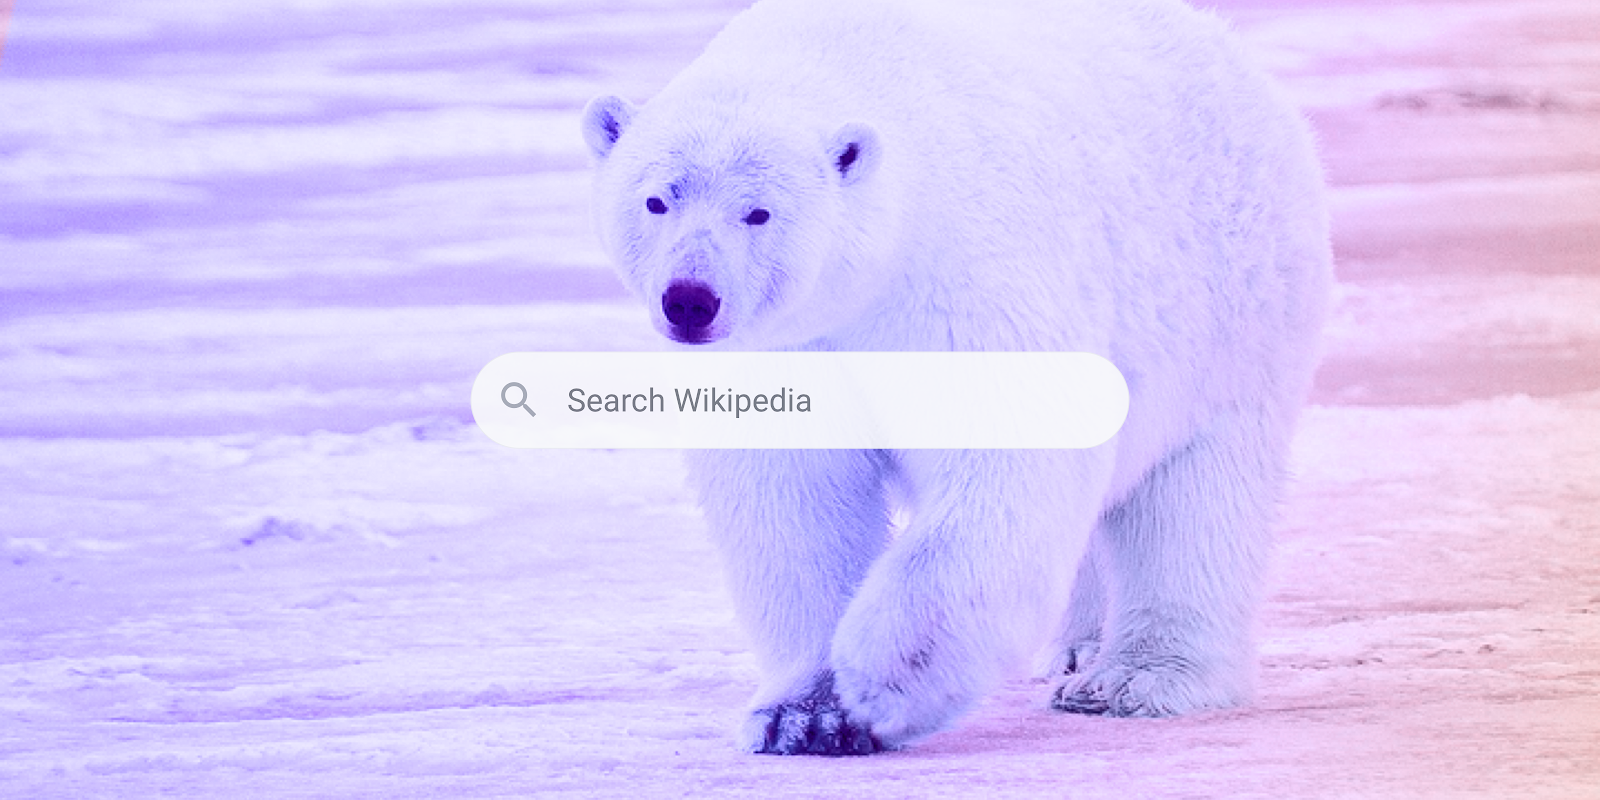 In search of the perfect search for Wikipedia